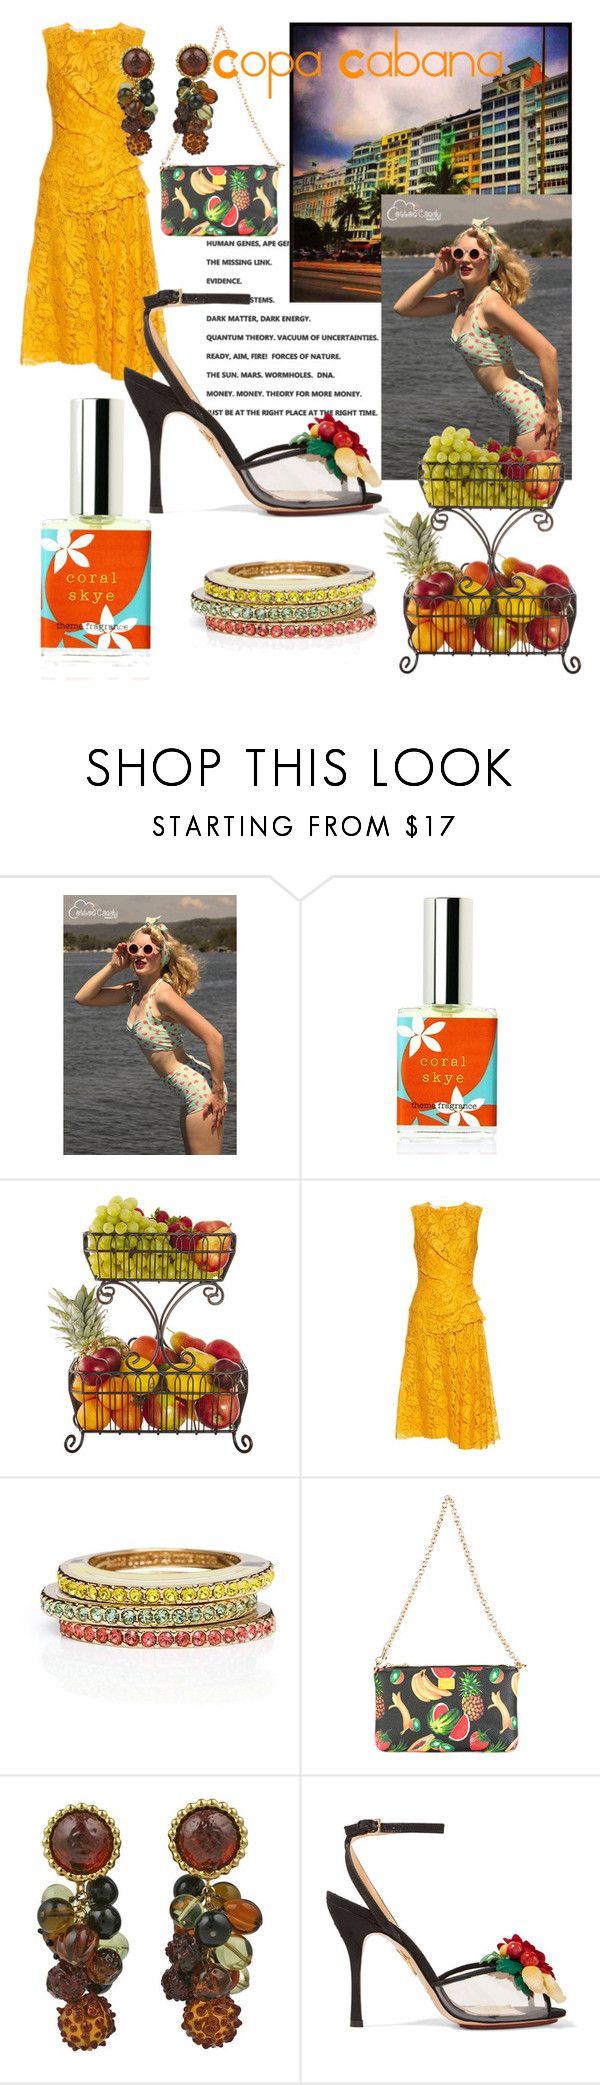 """""""Copa Cabana"""" by mdfletch ❤ liked on Polyvore featuring FRUIT, Mikasa, Oscar de la Renta, Kate Spade, Dolce&Gabbana, DOMINIQUE AURIENTIS, Charlotte Olympia and copacabana"""